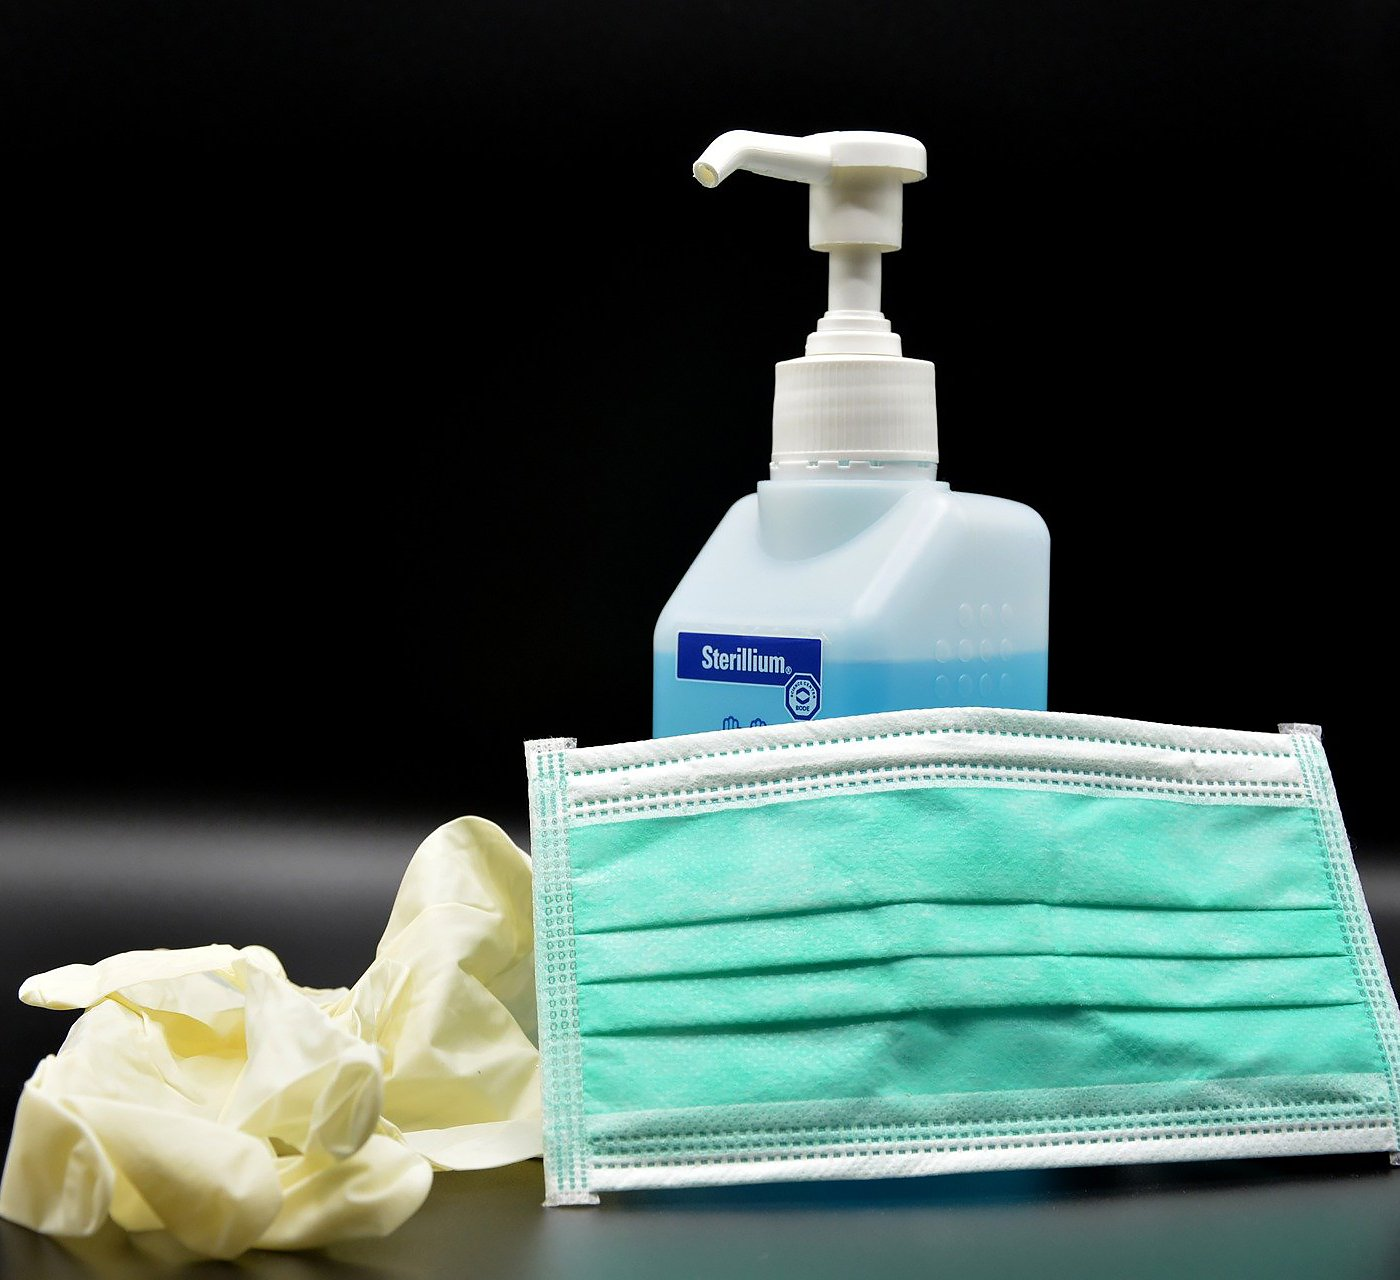 hand-disinfection-4954840_1920-cropped